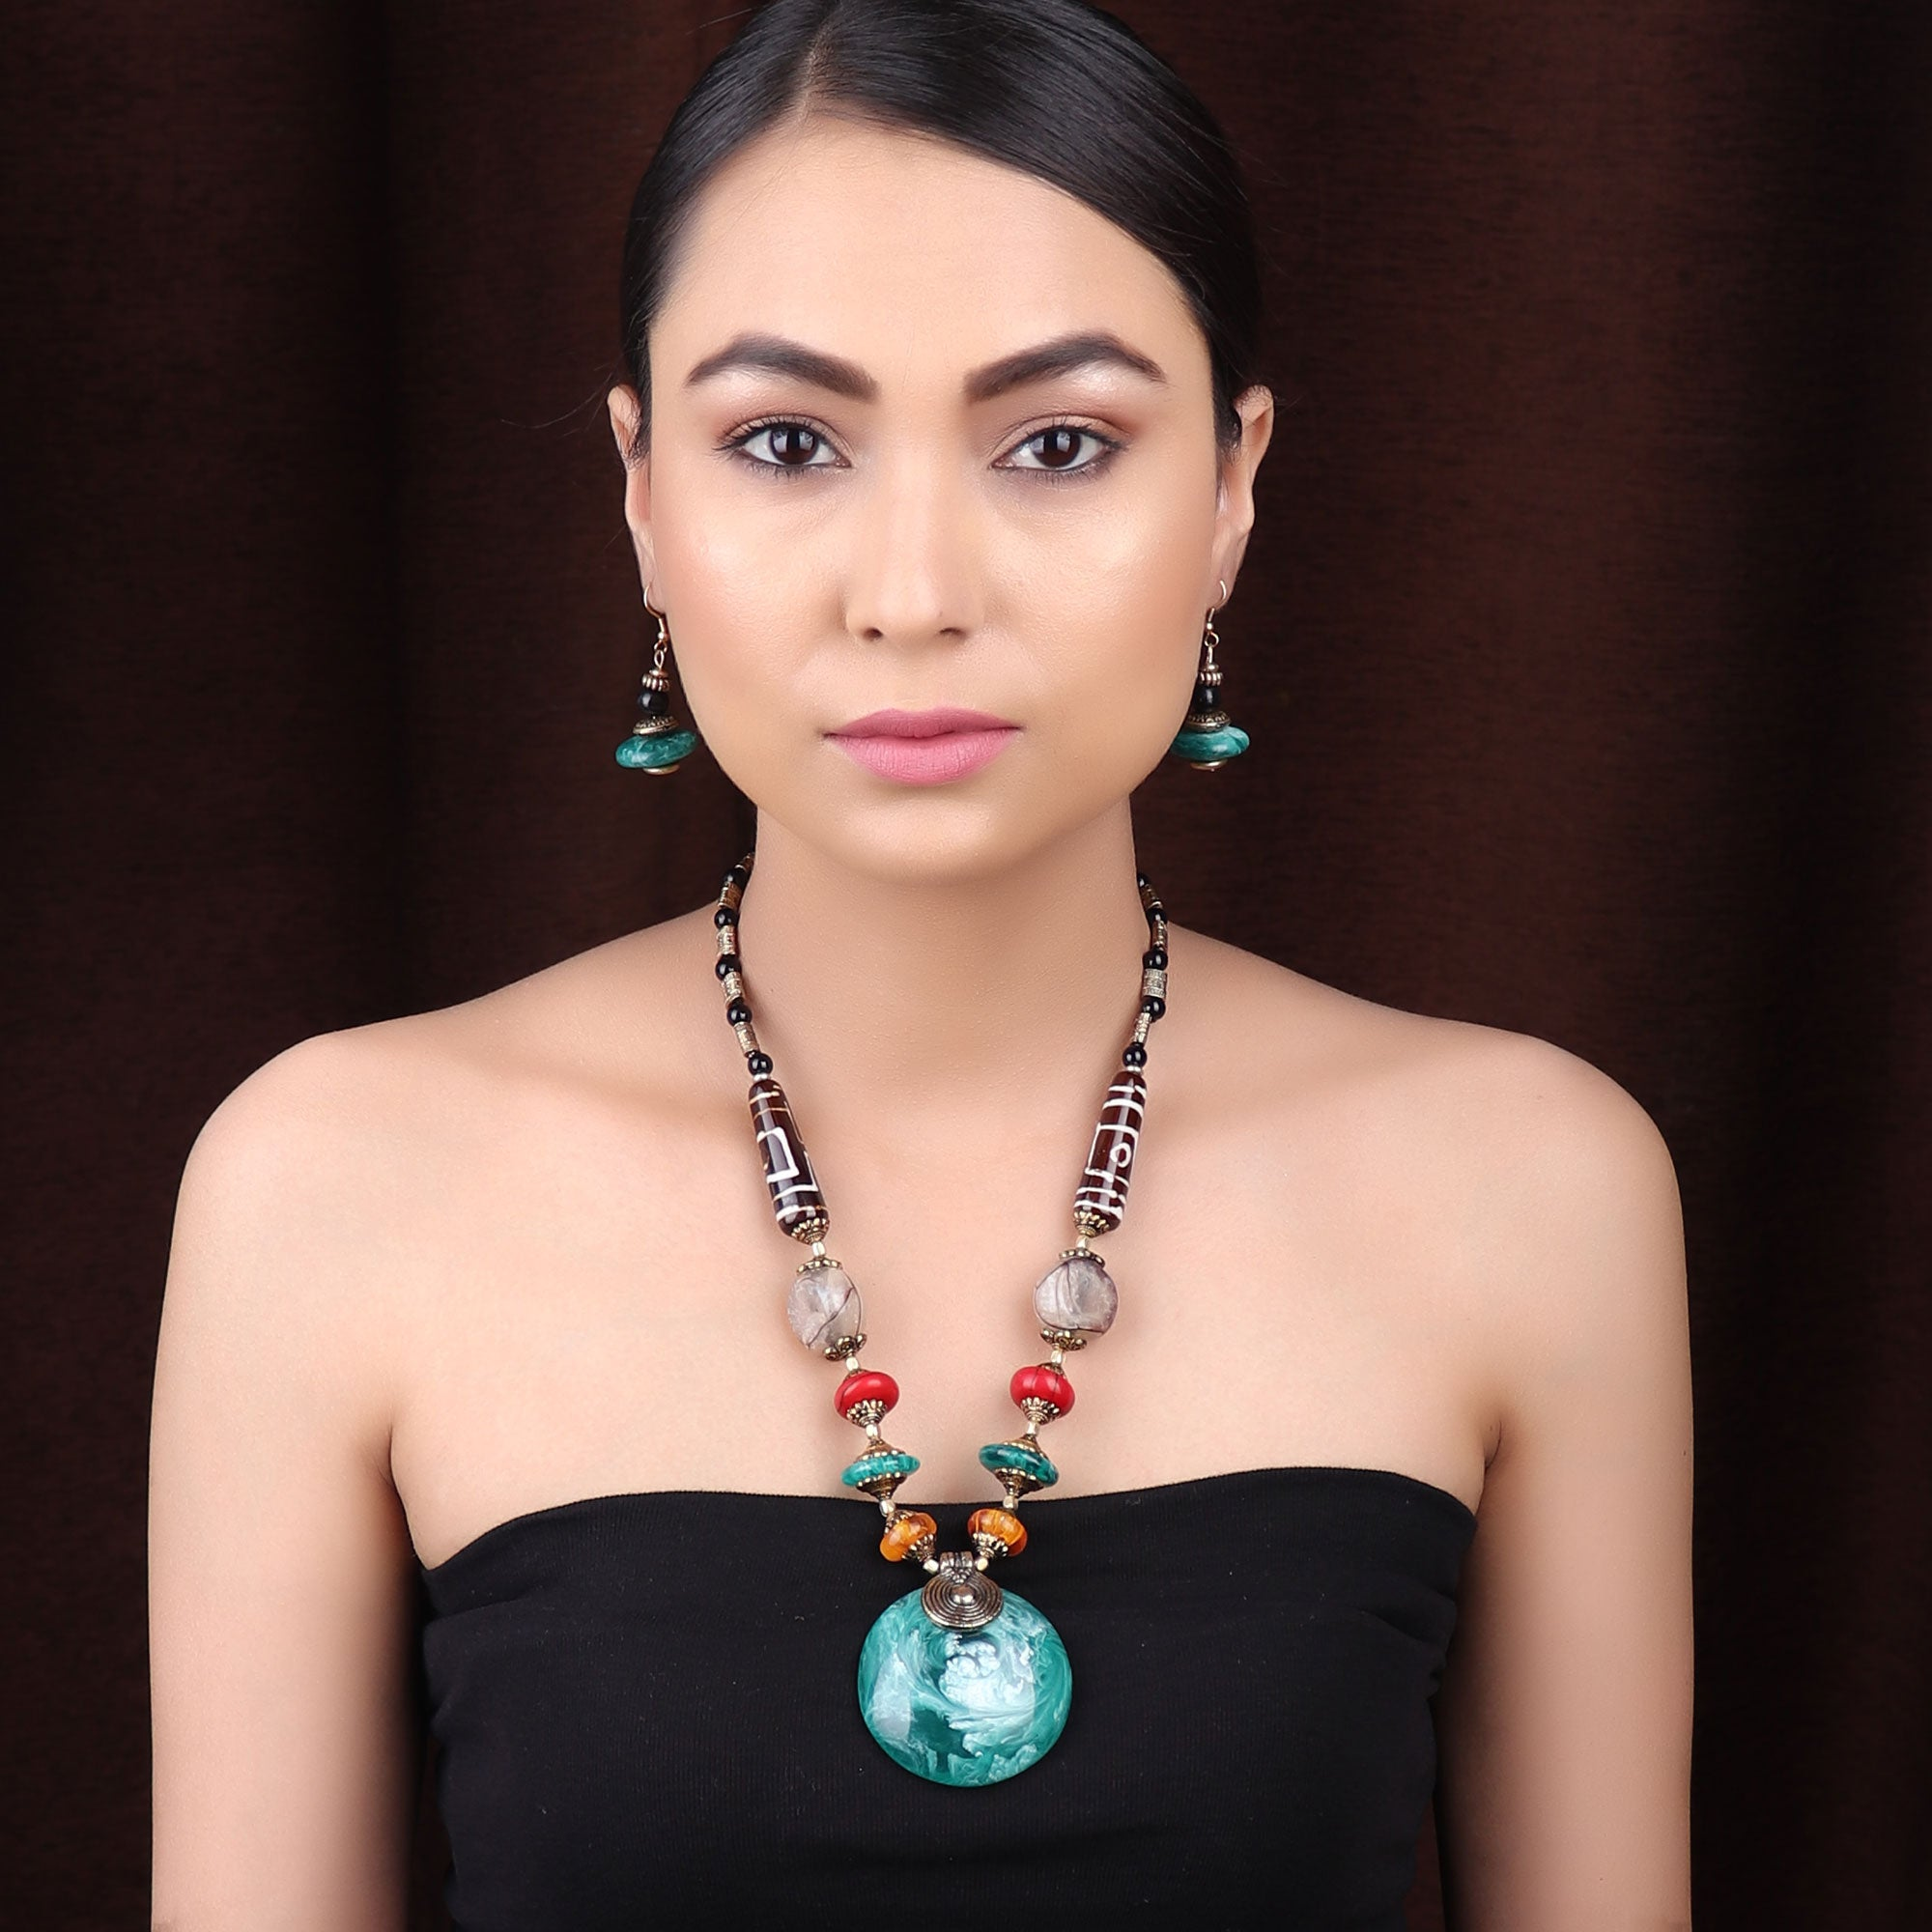 Necklace Set,The Celestial Necklace Set in Green - Cippele Multi Store